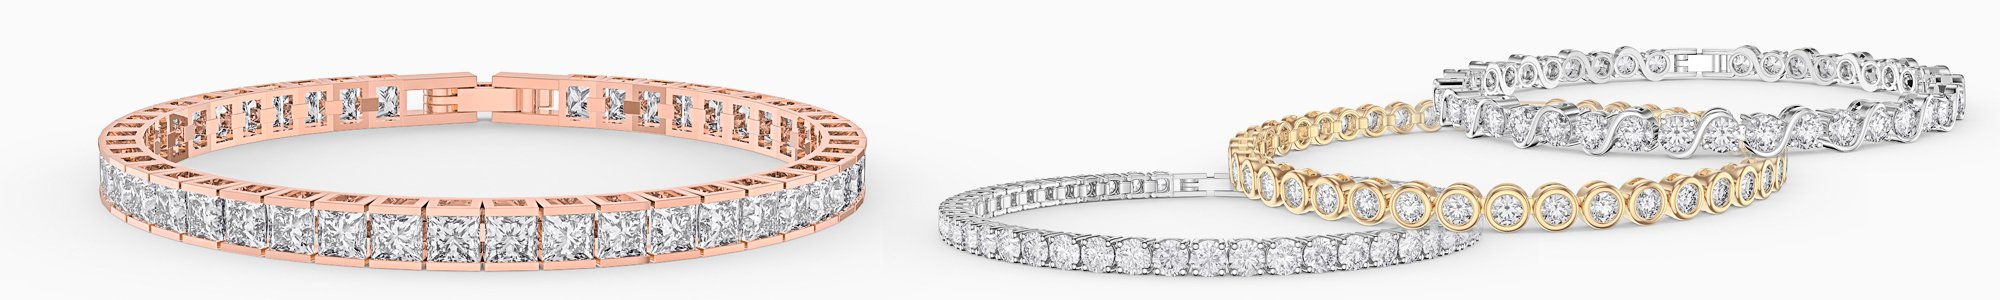 Bracelets for everyone - from precious gemstones to Diamonds. From Silver to 18K Gold.